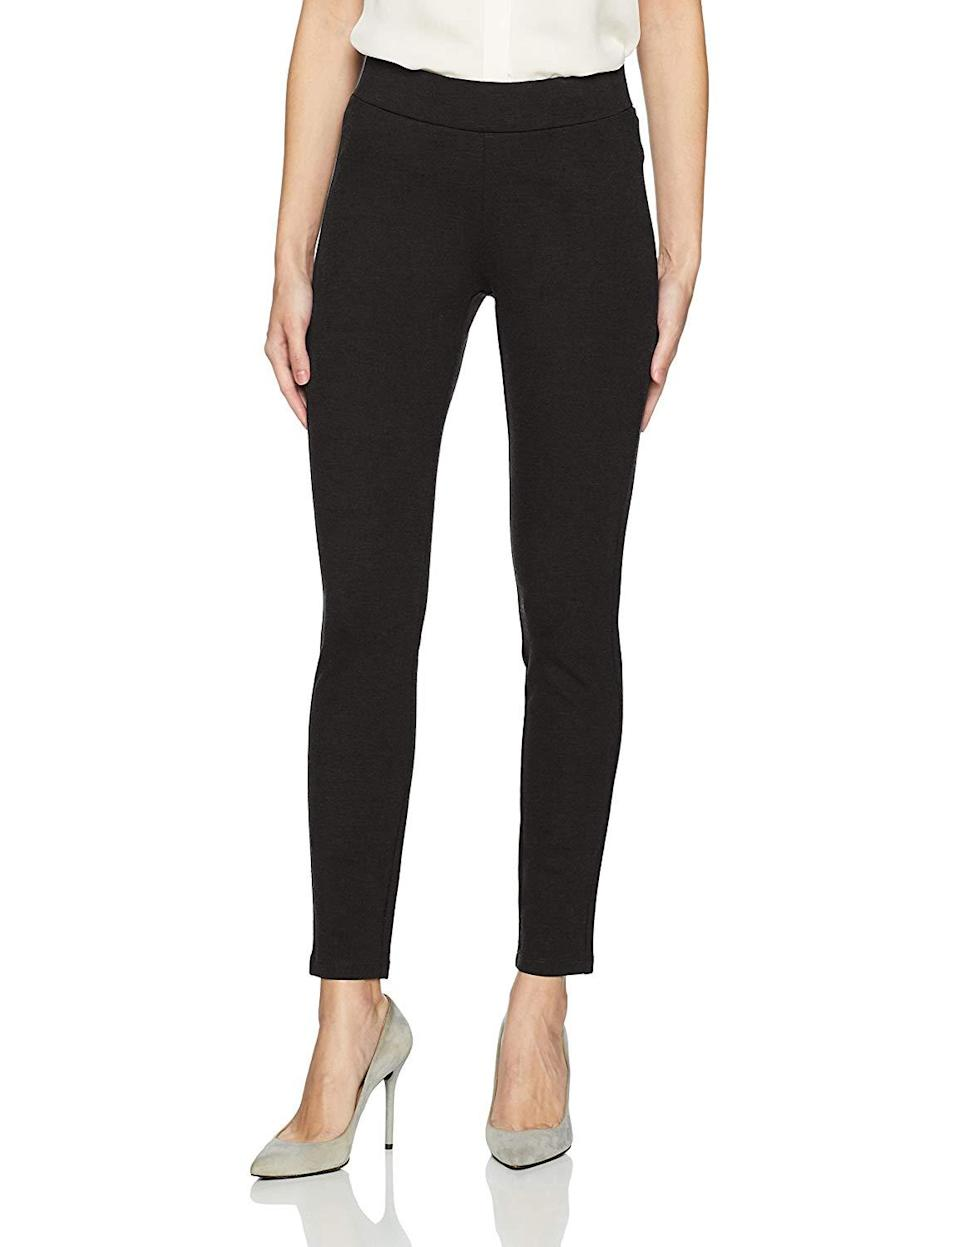 "<h3><a href=""https://www.amazon.com/NYDJ-Womens-Basic-Ponte-Leggings/dp/B06XL1DW1M"" rel=""nofollow noopener"" target=""_blank"" data-ylk=""slk:NYDJ Basic Pull On Ponte Knit Leggings"" class=""link rapid-noclick-resp"">NYDJ Basic Pull On Ponte Knit Leggings</a> </h3><br><br>4.2 out of 5 stars and 37 reviews<br><br><strong>Promising Review:</strong> Searching for comfortable leggings to travel in that don't look like, well, leggings? Look no further. Commenter <a href=""https://www.amazon.com/gp/customer-reviews/R3B53DKBQR7MF1"" rel=""nofollow noopener"" target=""_blank"" data-ylk=""slk:Bird"" class=""link rapid-noclick-resp"">Bird</a> writes, ""Love these leggings. They have a great fit, do follow directions and get one size down. I love them for long flights and travel. They wash really well.""<br><br><strong>NYDJ</strong> Basic Pull On Ponte Knit Leggings, $, available at <a href=""https://www.amazon.com/NYDJ-Womens-Basic-Ponte-Leggings/dp/B06XL1DW1M"" rel=""nofollow noopener"" target=""_blank"" data-ylk=""slk:Amazon"" class=""link rapid-noclick-resp"">Amazon</a>"